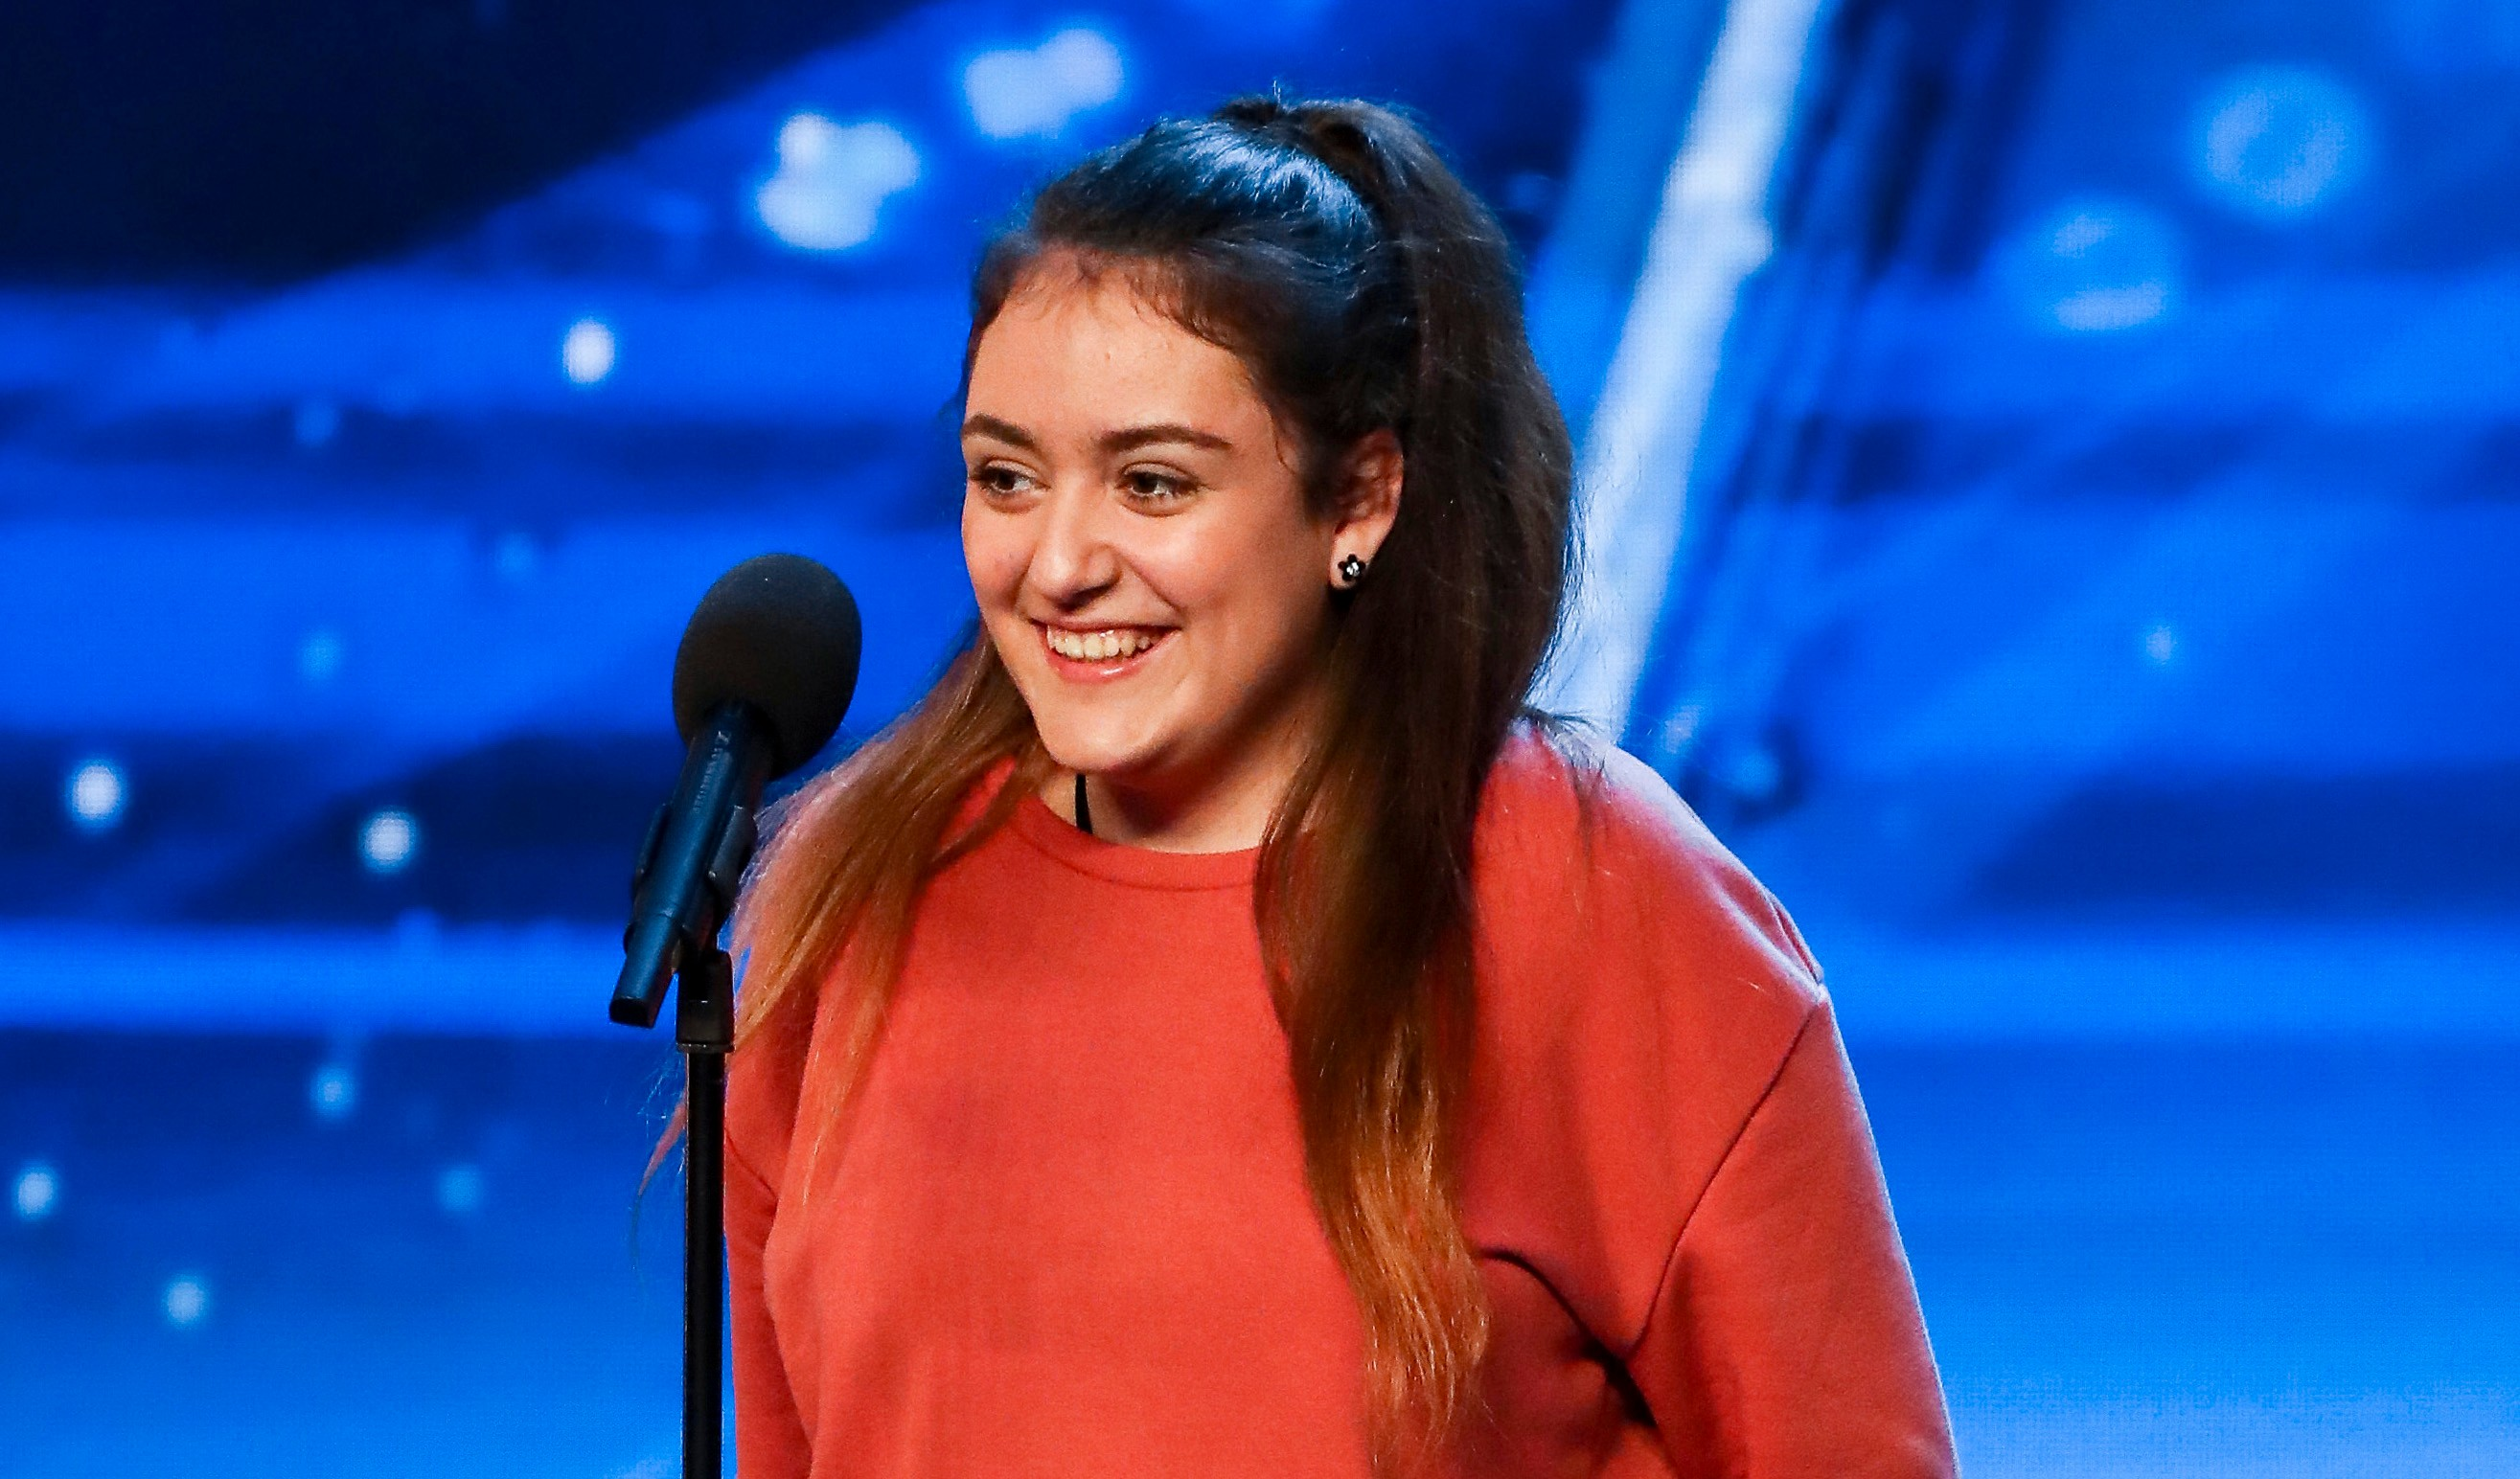 Amy Marie Borg on Britain's Got Talent